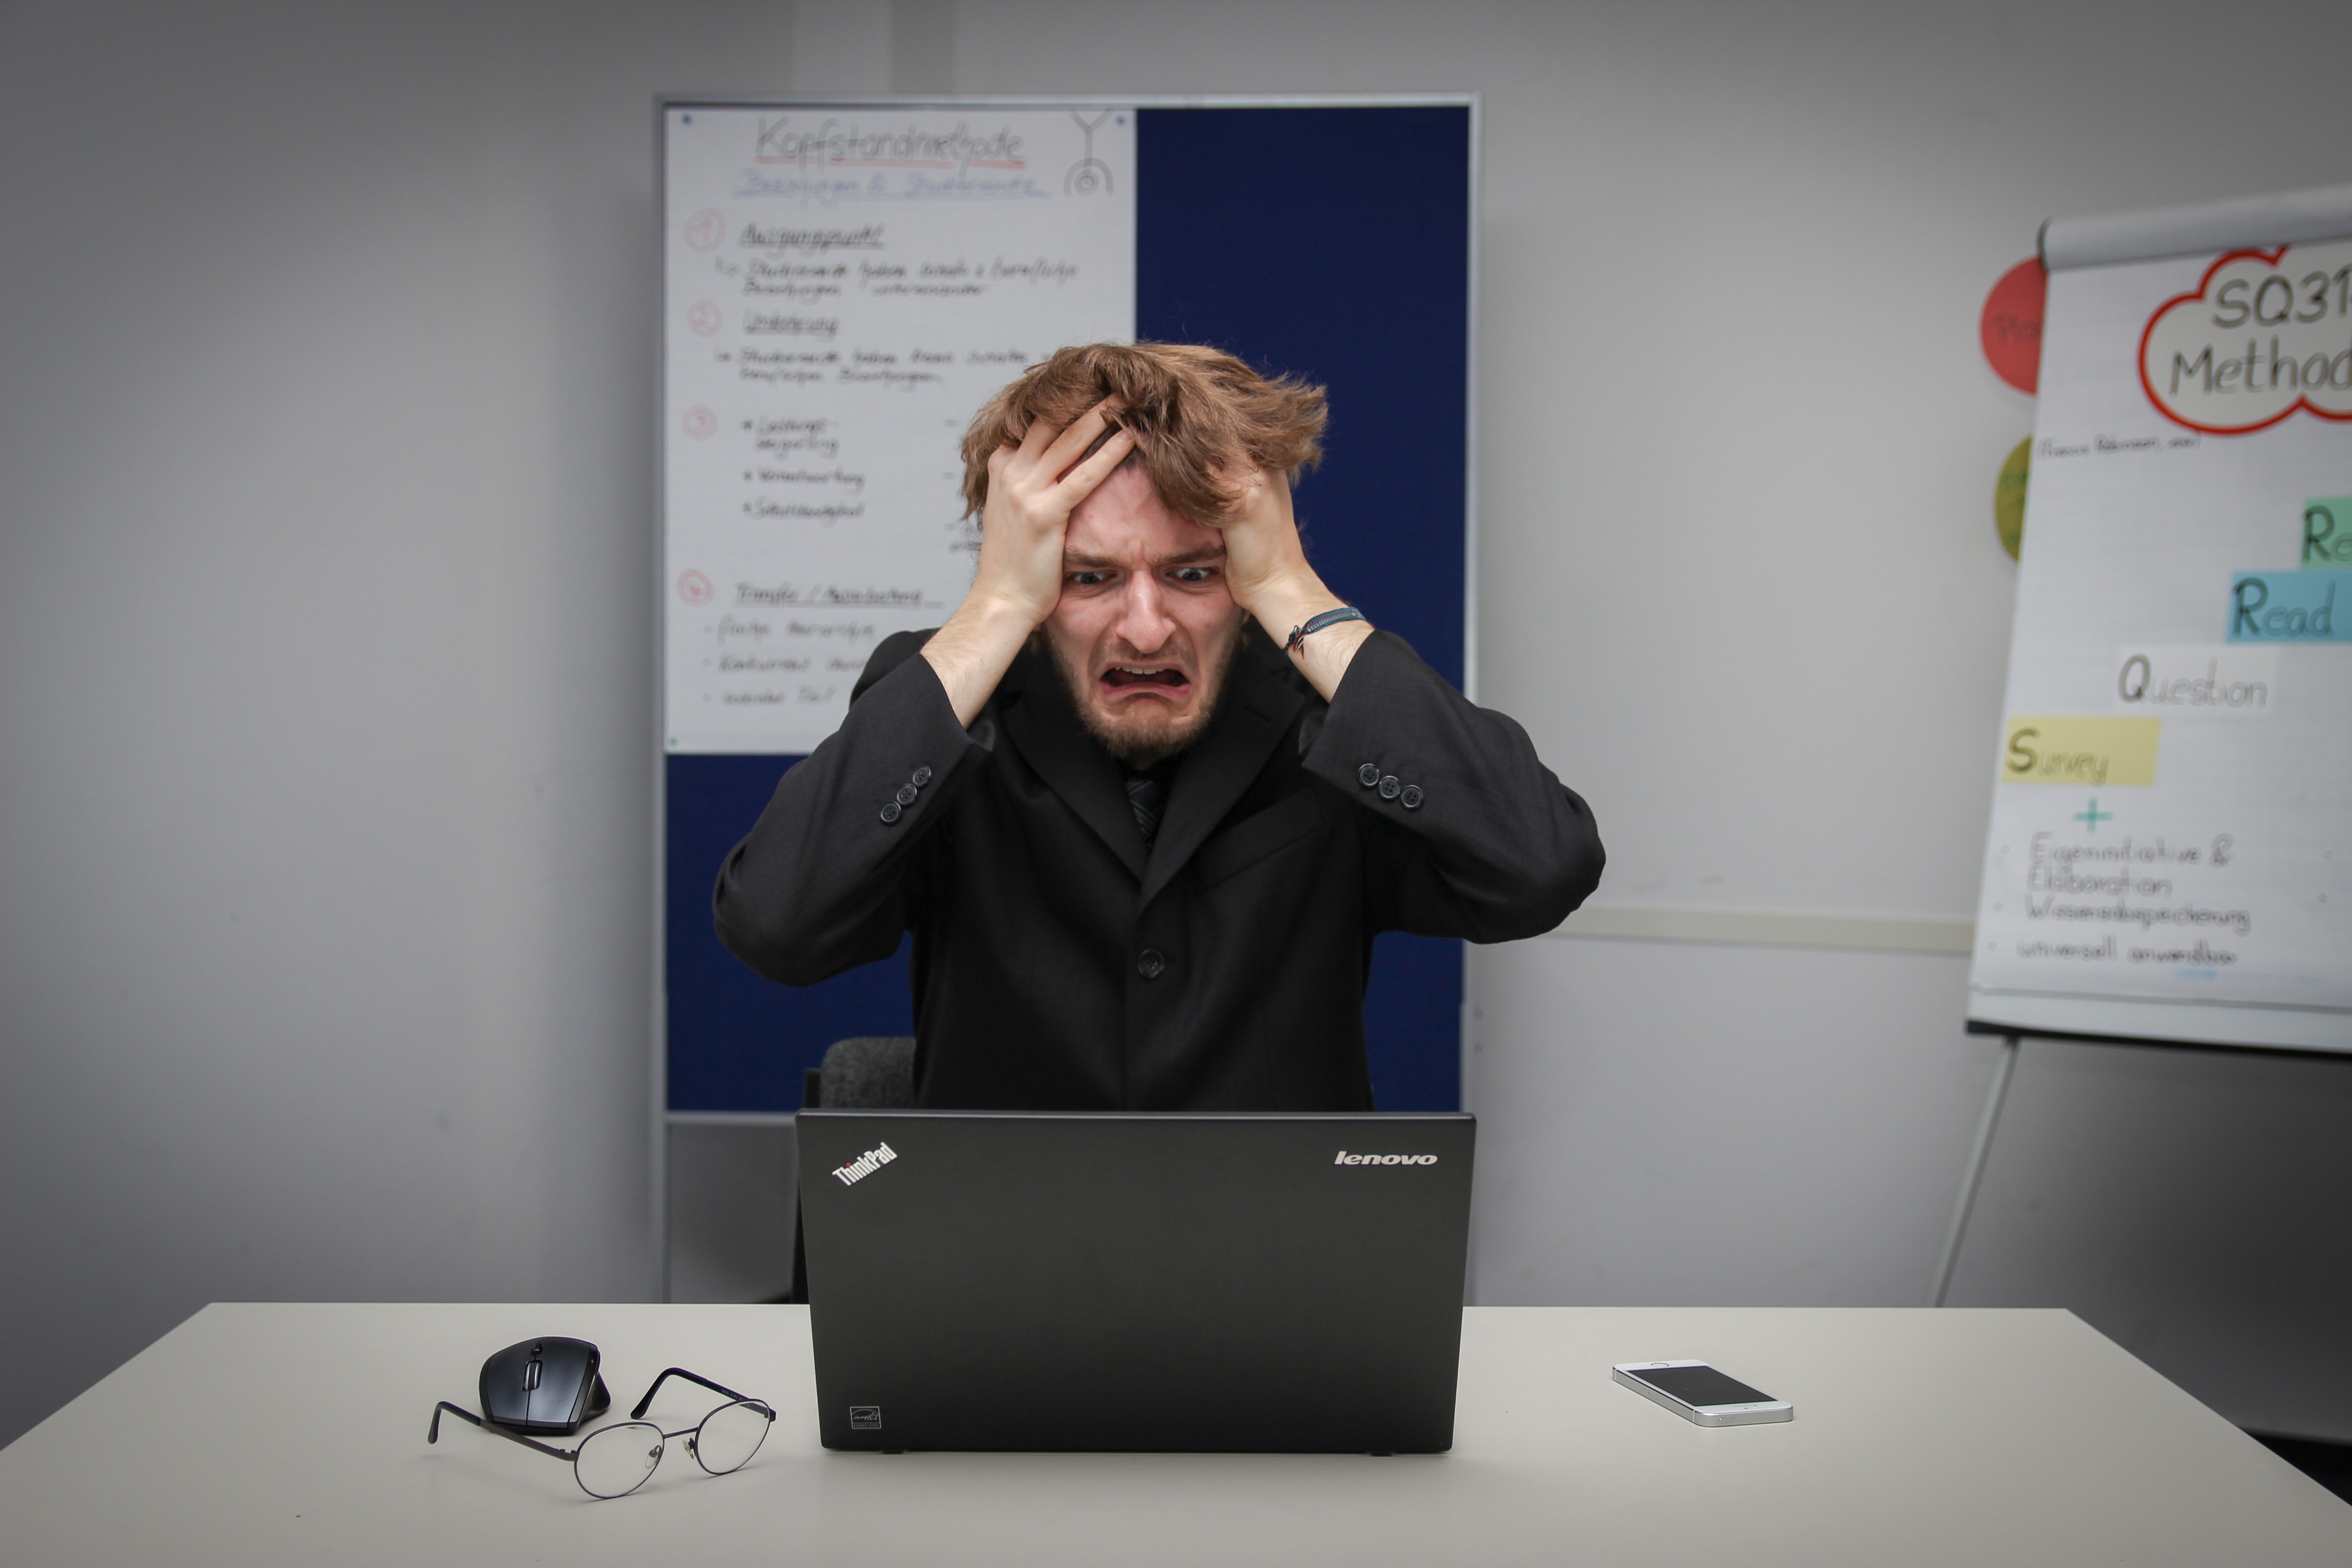 Free funnel builder software: Photo of man being frustrated at computer